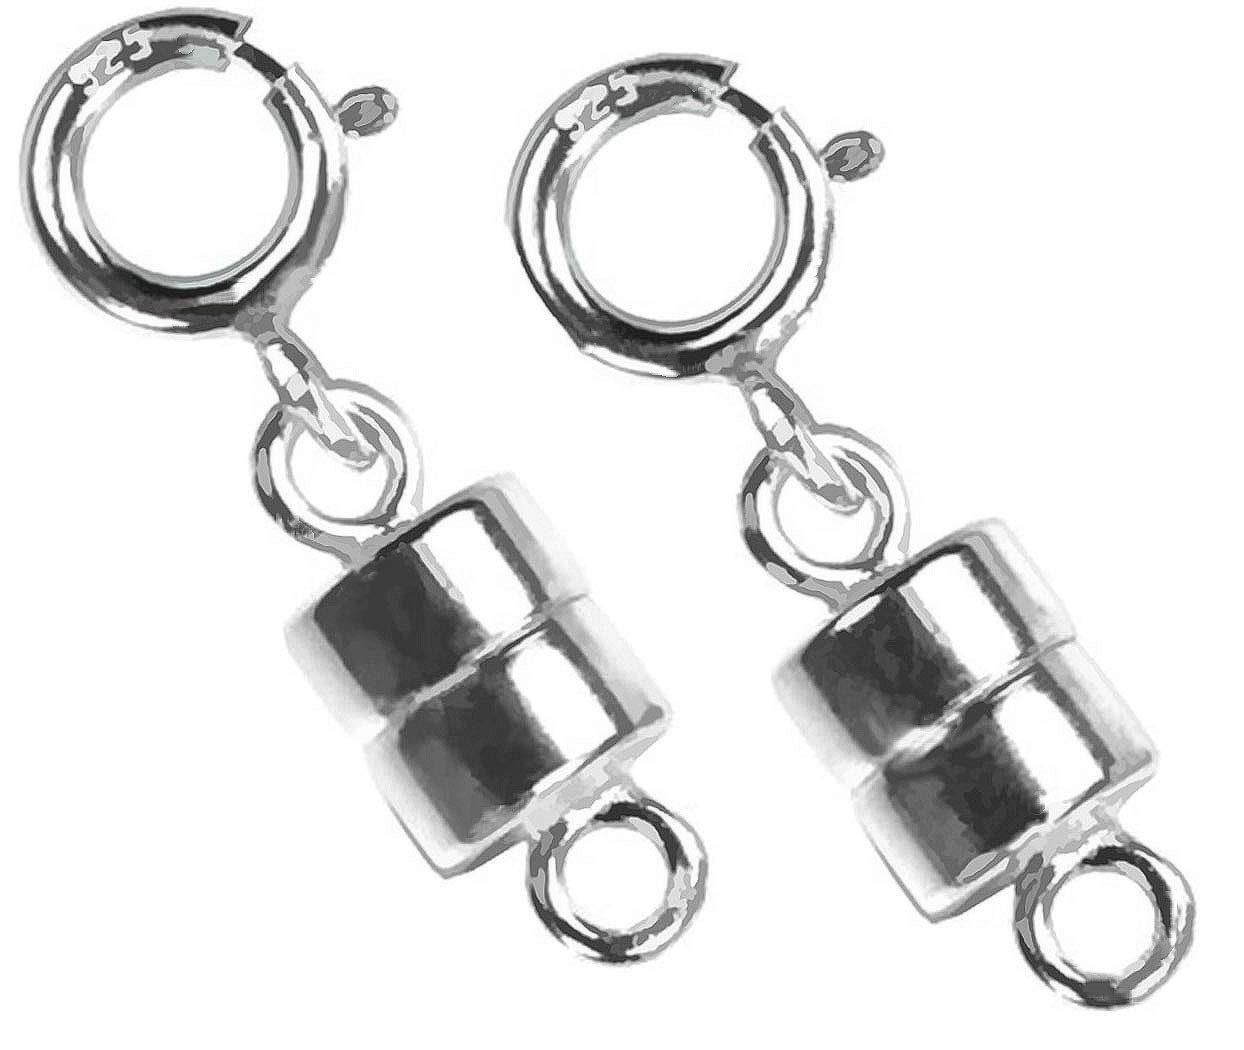 uGems 2 Sterling Silver Converters Magnetic Clasps by uGems